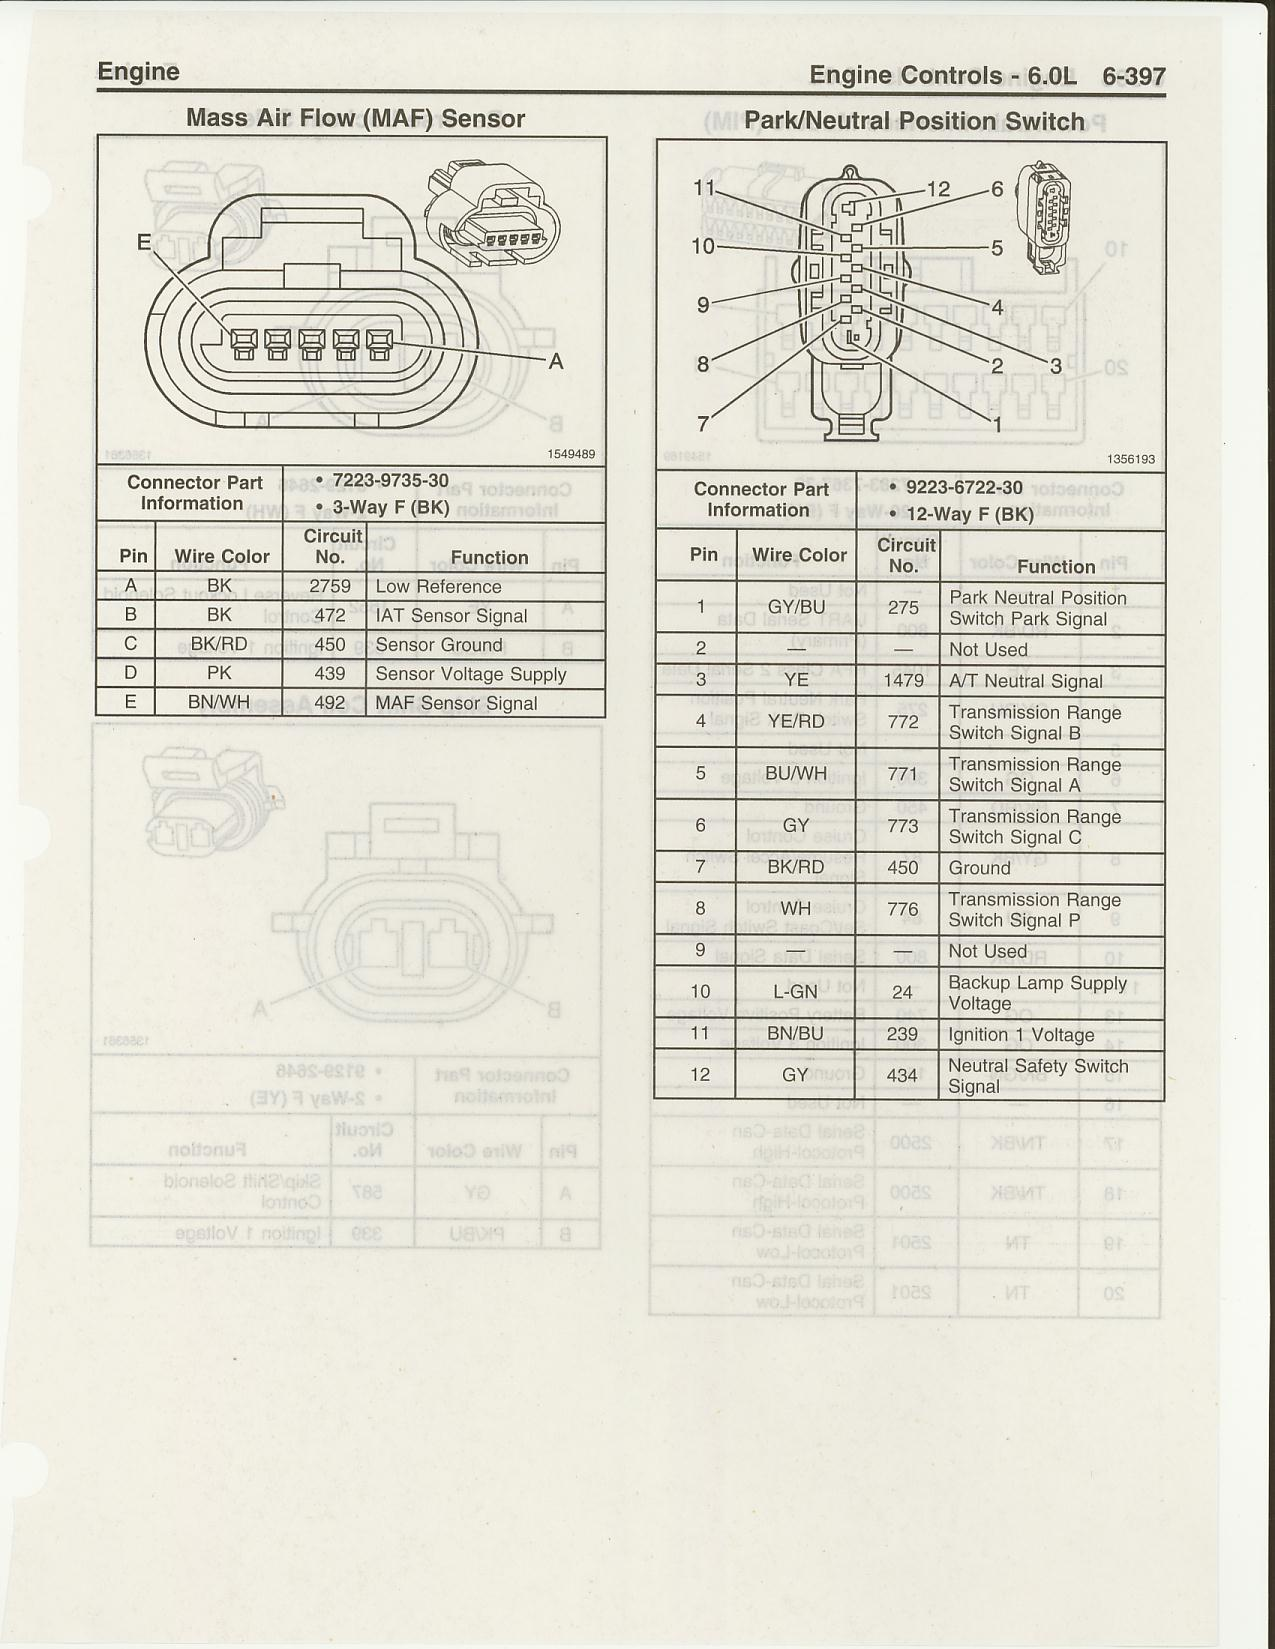 2006 Gto Map Iat Wiring Diagram Portal 1967 Pontiac Tachometer Ls2 Maf Sensor Harness Pinouts Ls1tech Camaro And Firebird Rh Com Color 1964 Dash